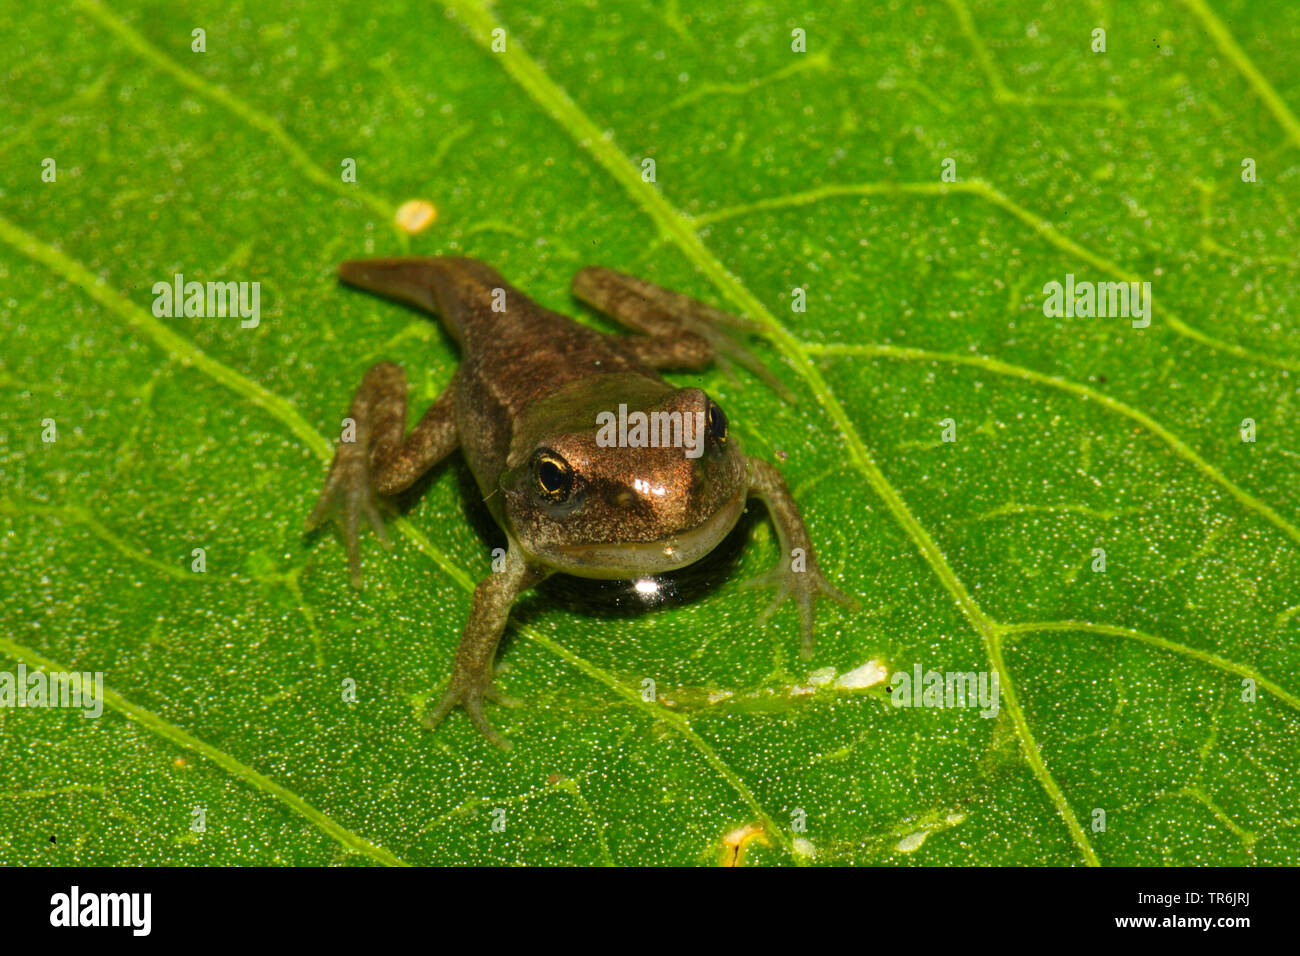 common frog, grass frog (Rana temporaria), young frog on a leaf, Germany - Stock Image